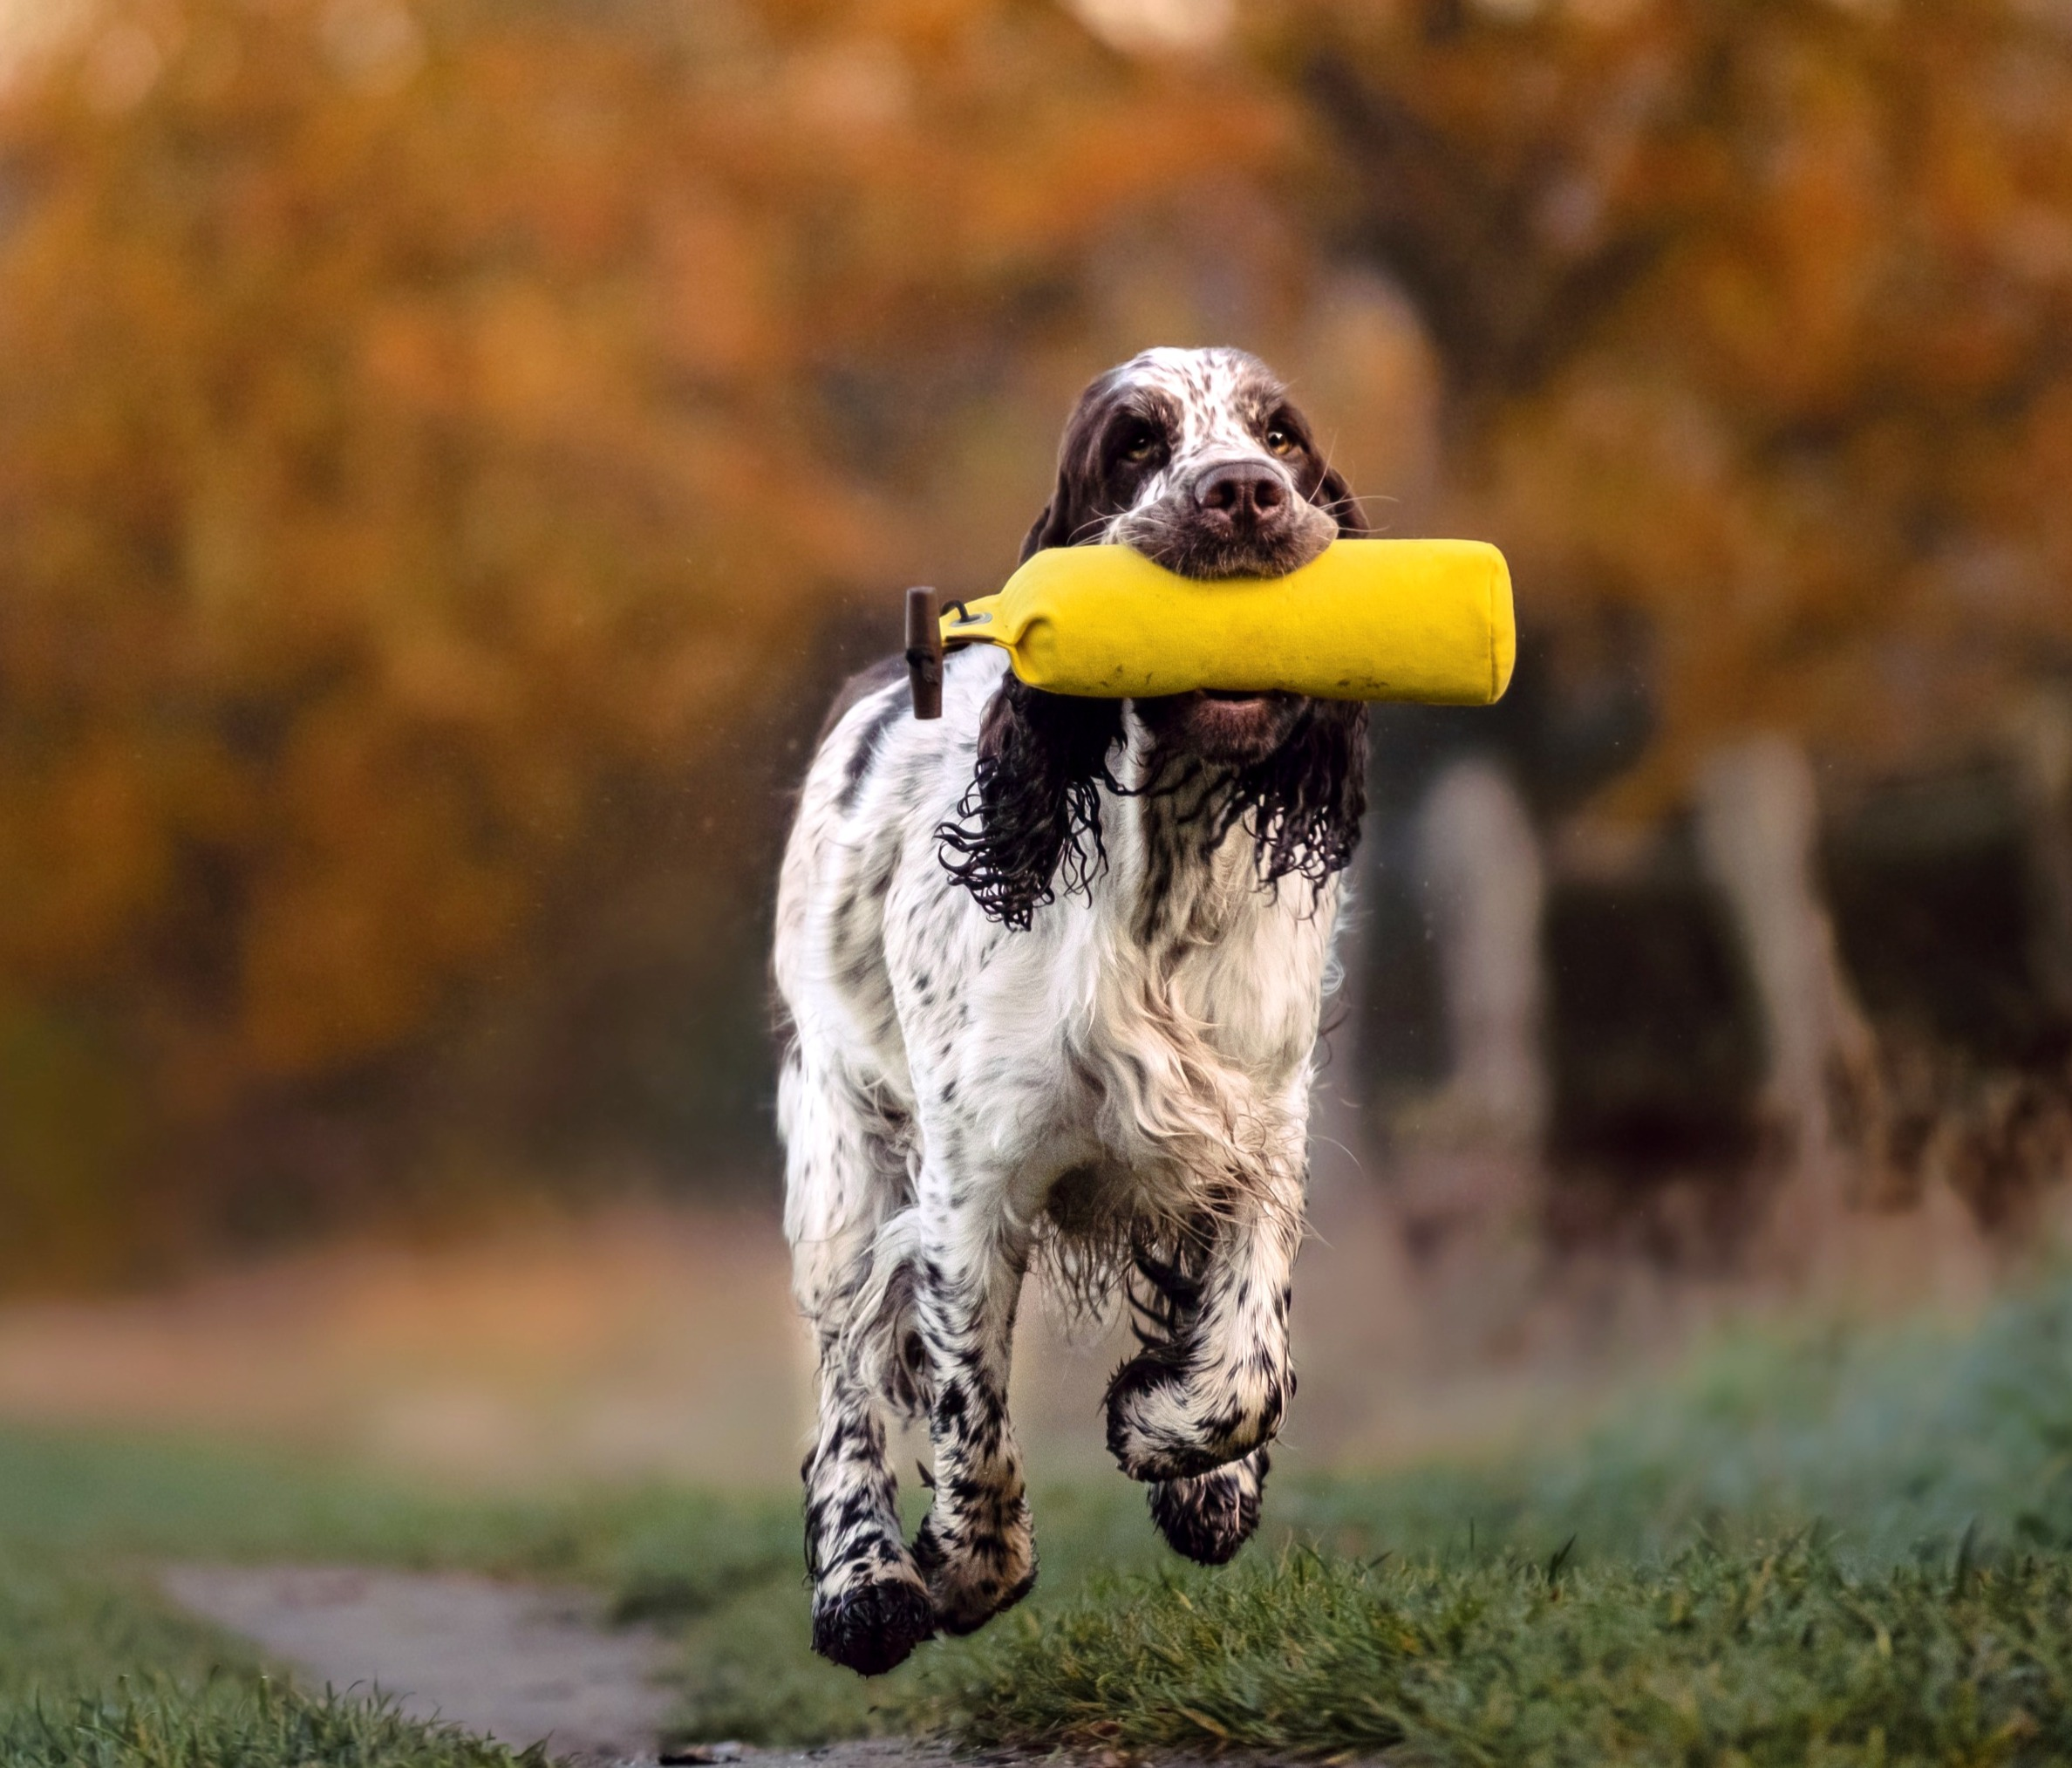 Bungee Jumper's Just In Love, Kennel Crowfield's Englsih springer spaniel